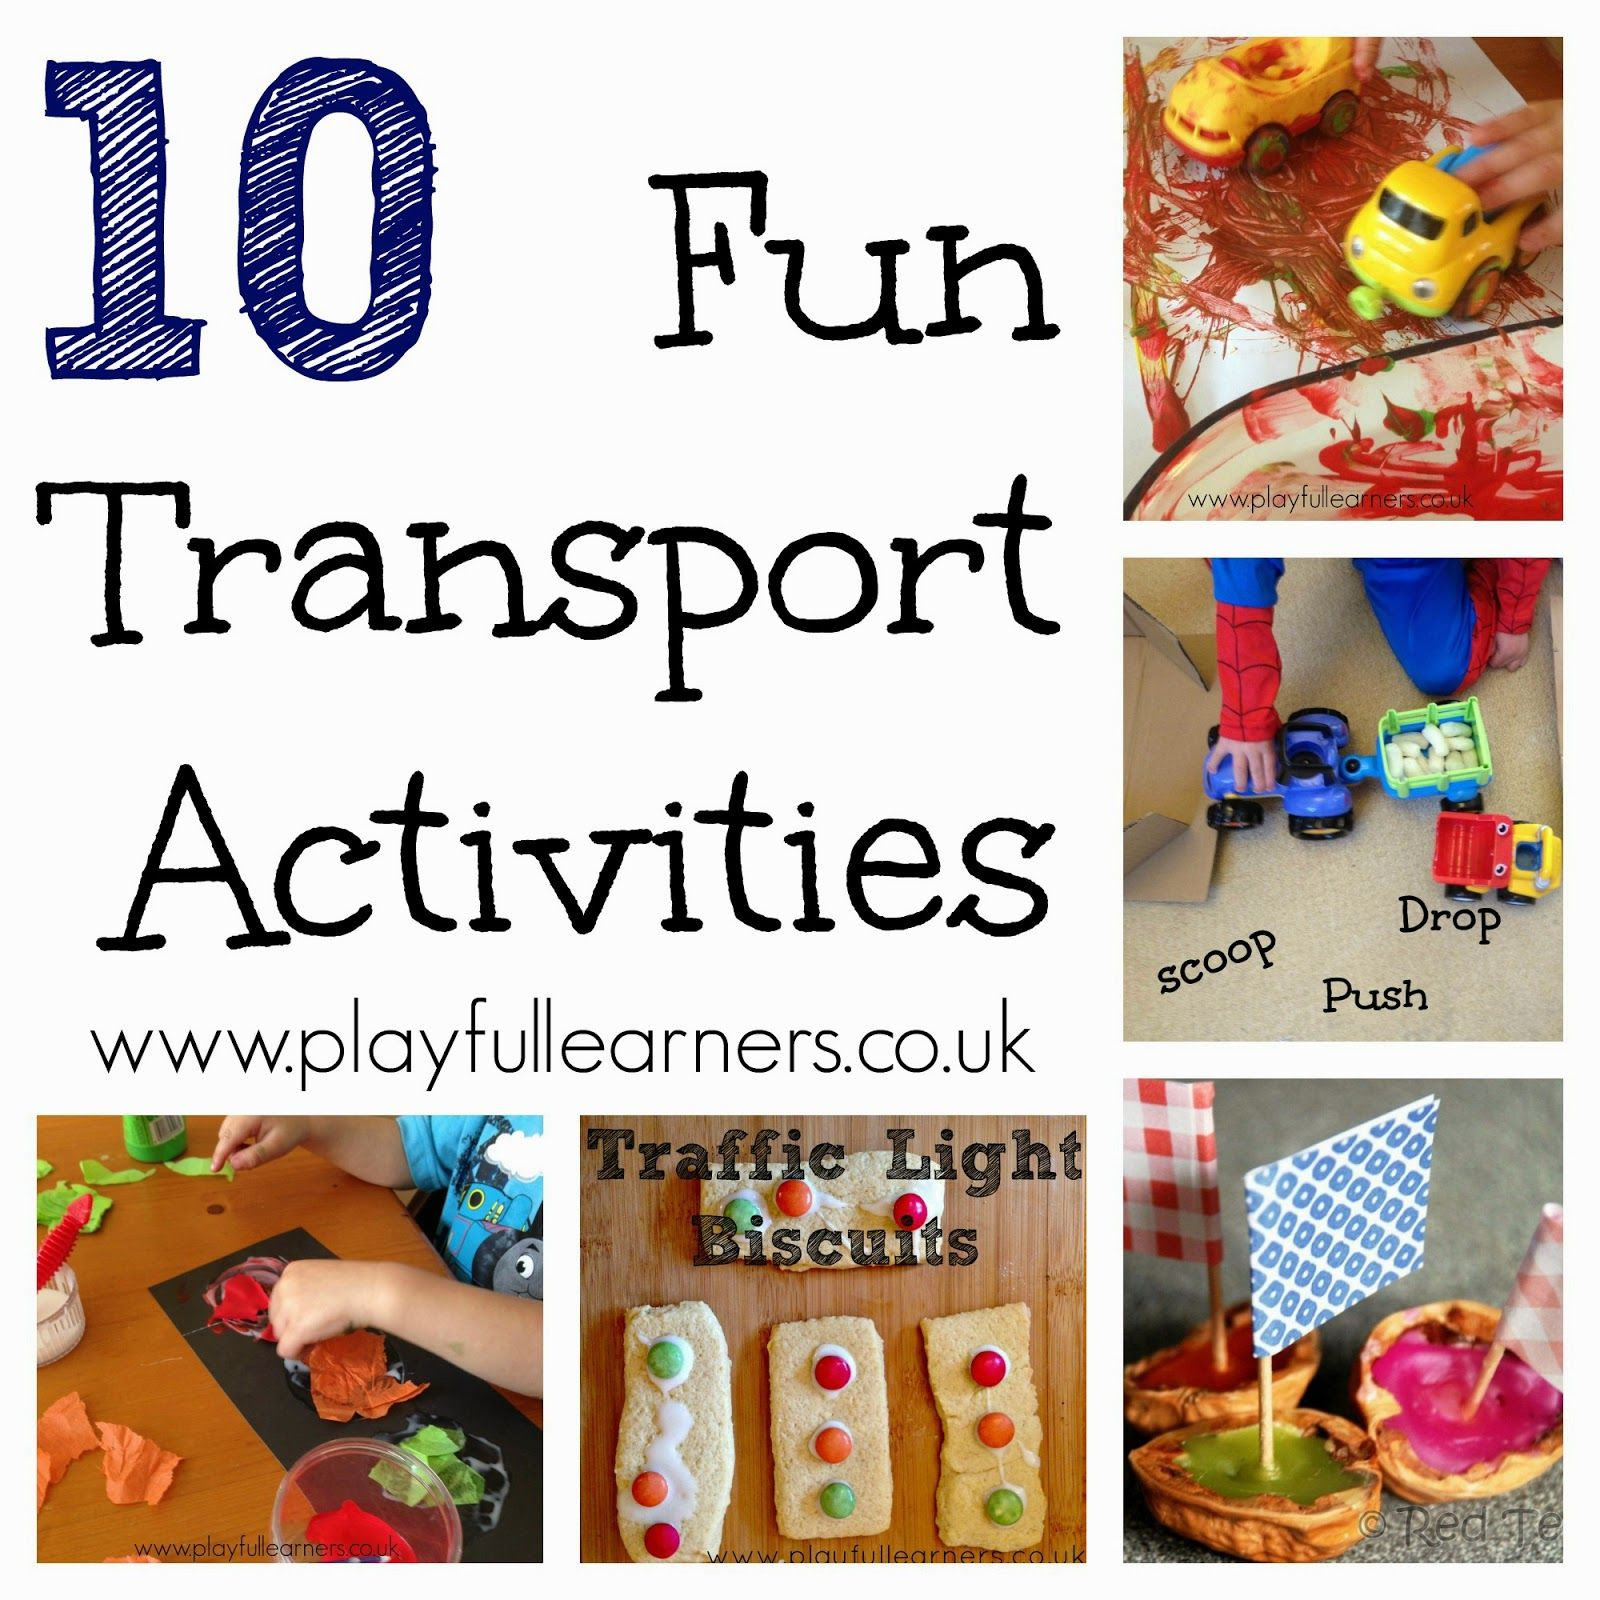 Playful Learners 10 Fun Transport Activities